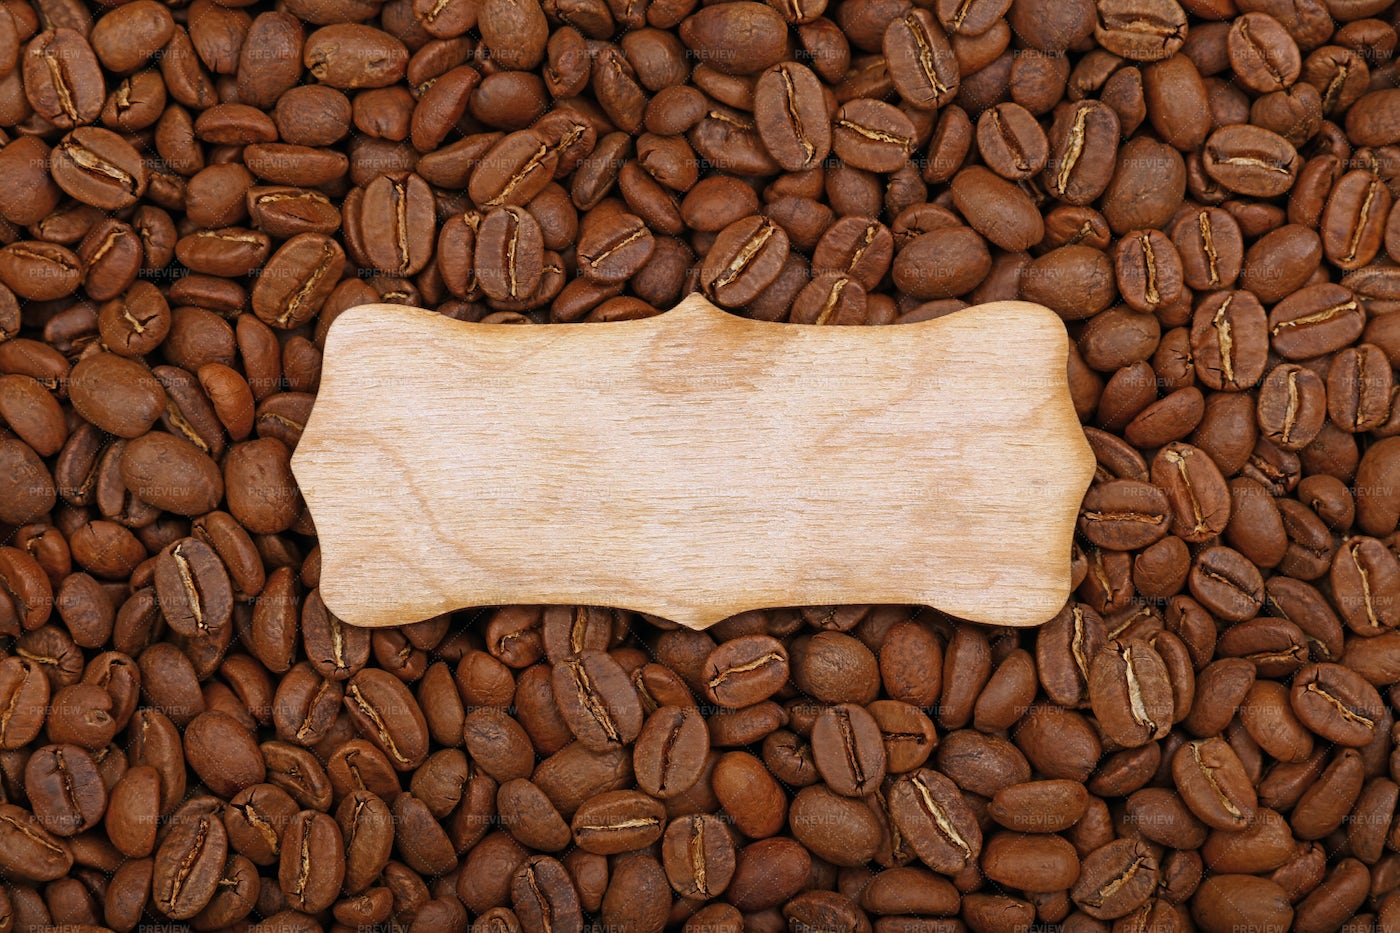 Wooden Sign Over Coffee Beans: Stock Photos